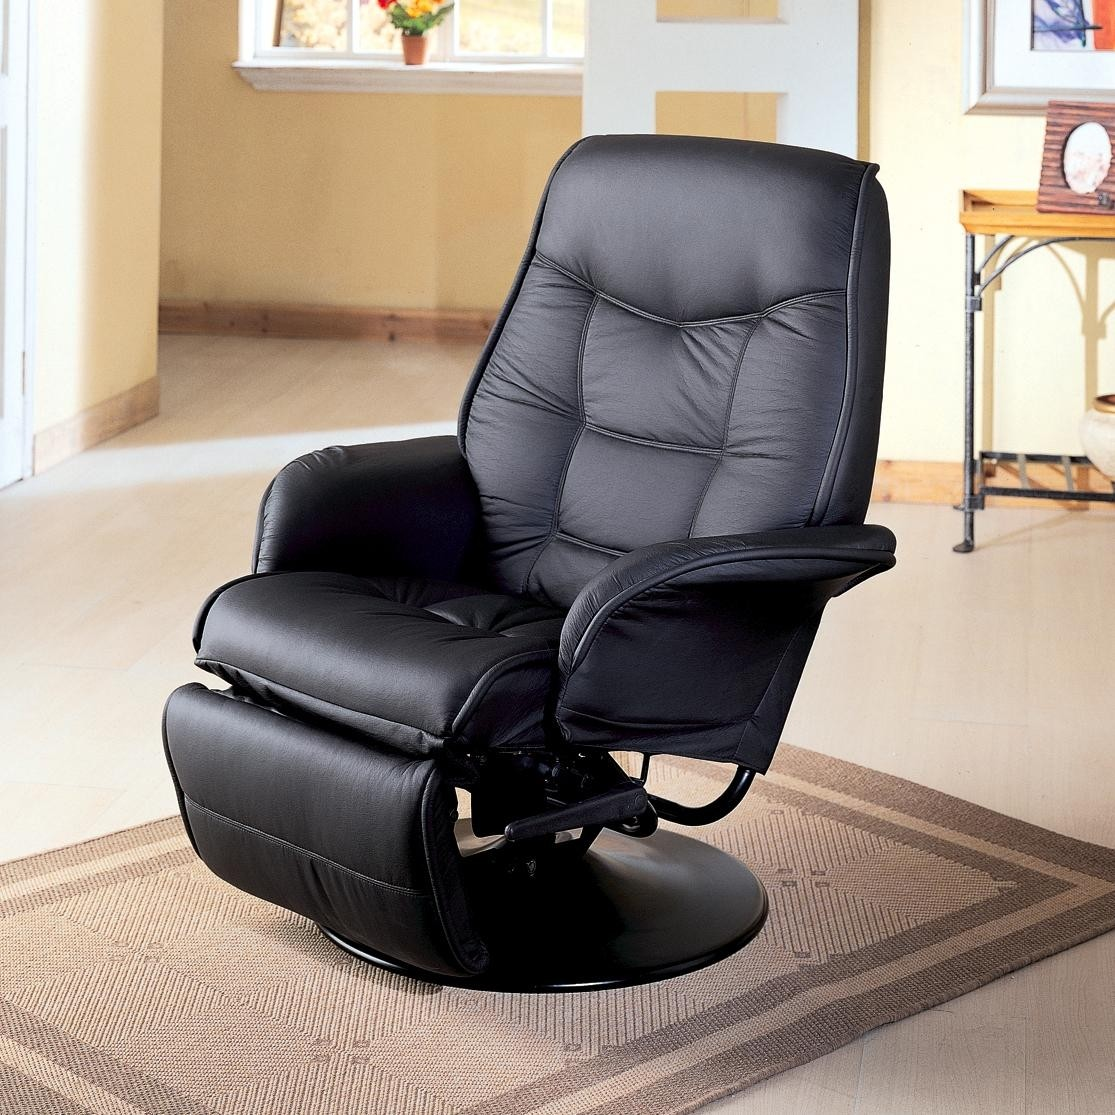 lounge chair indoor wedding decorations for church chairs reclining chaise ideas on foter swivel